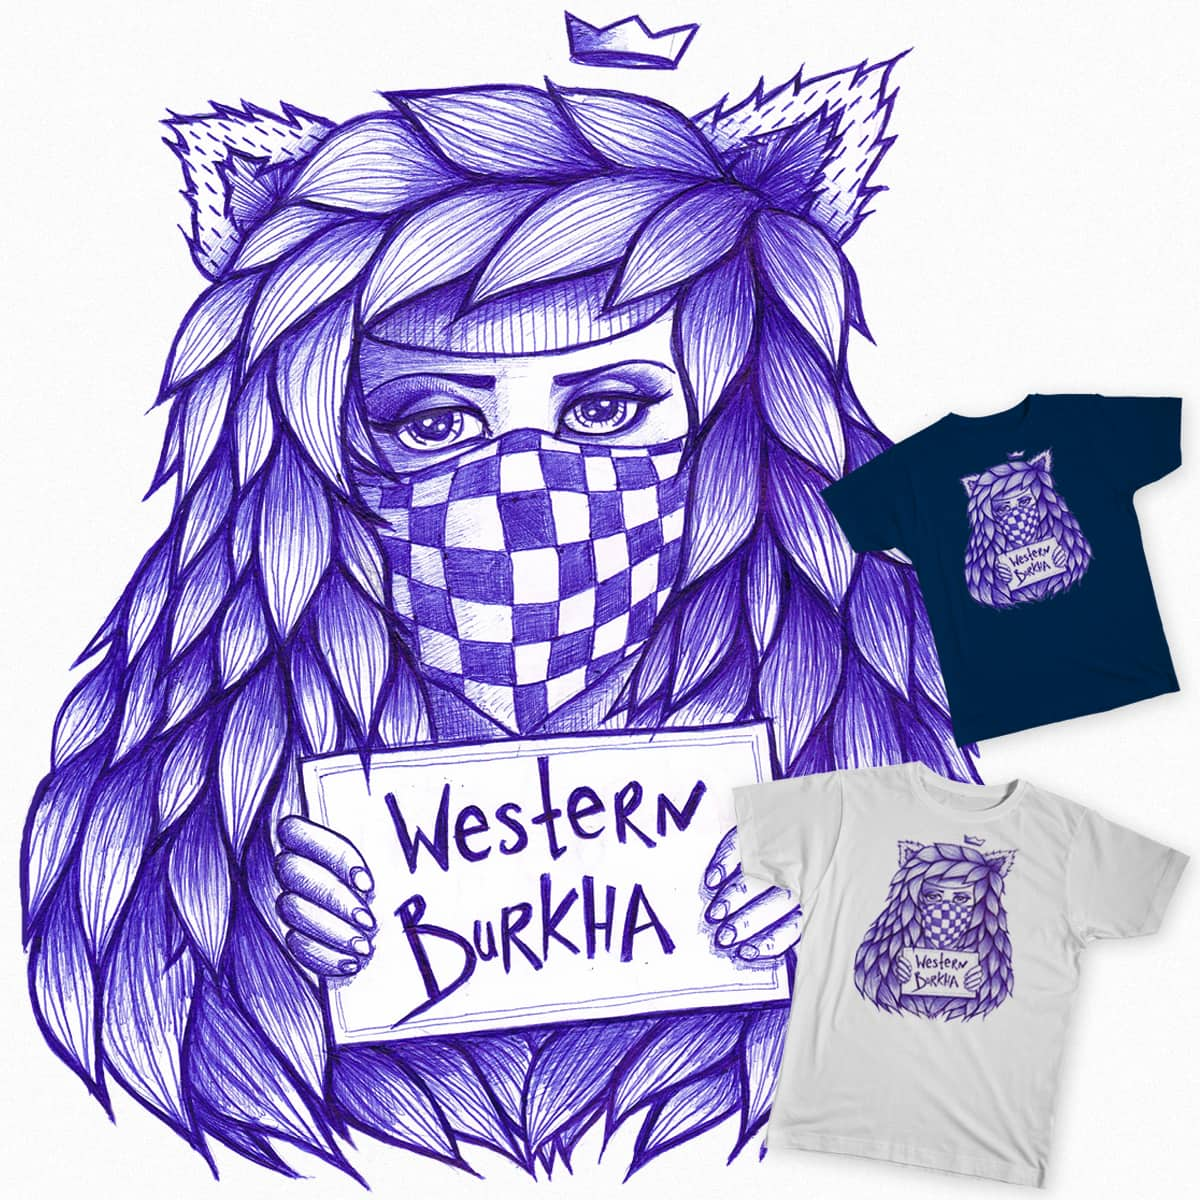 Western Burkha by Eve Design on Threadless